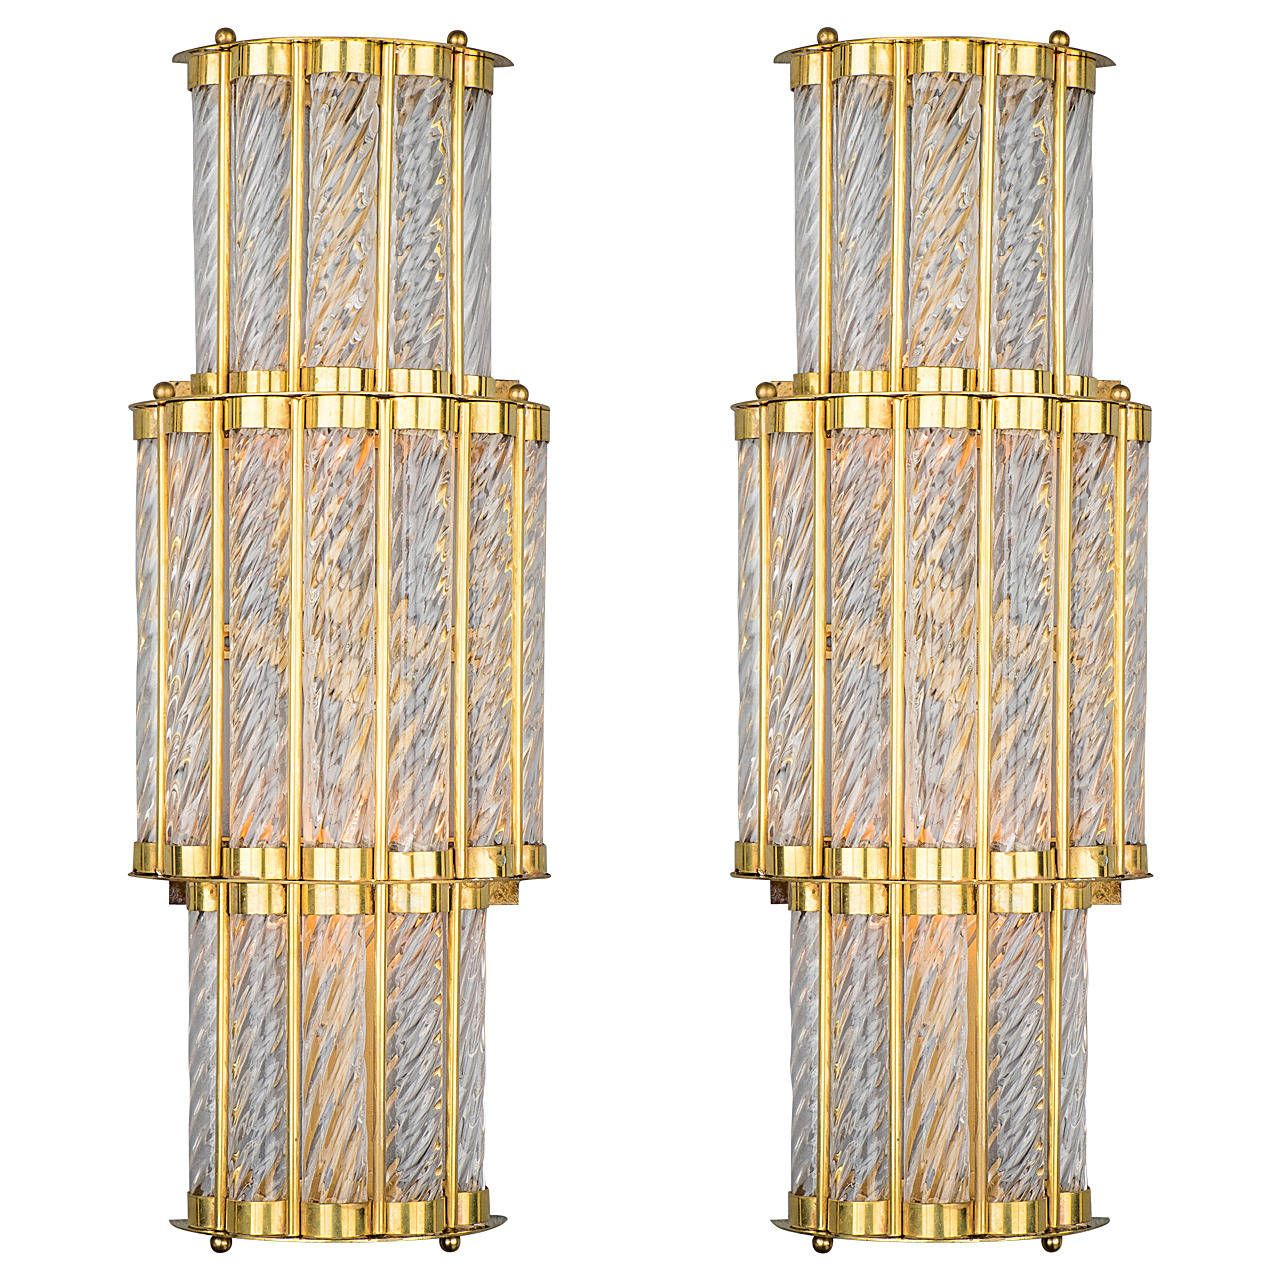 Art deco style murano wall sconces art deco style wall sconces art deco style murano wall sconces mozeypictures Gallery